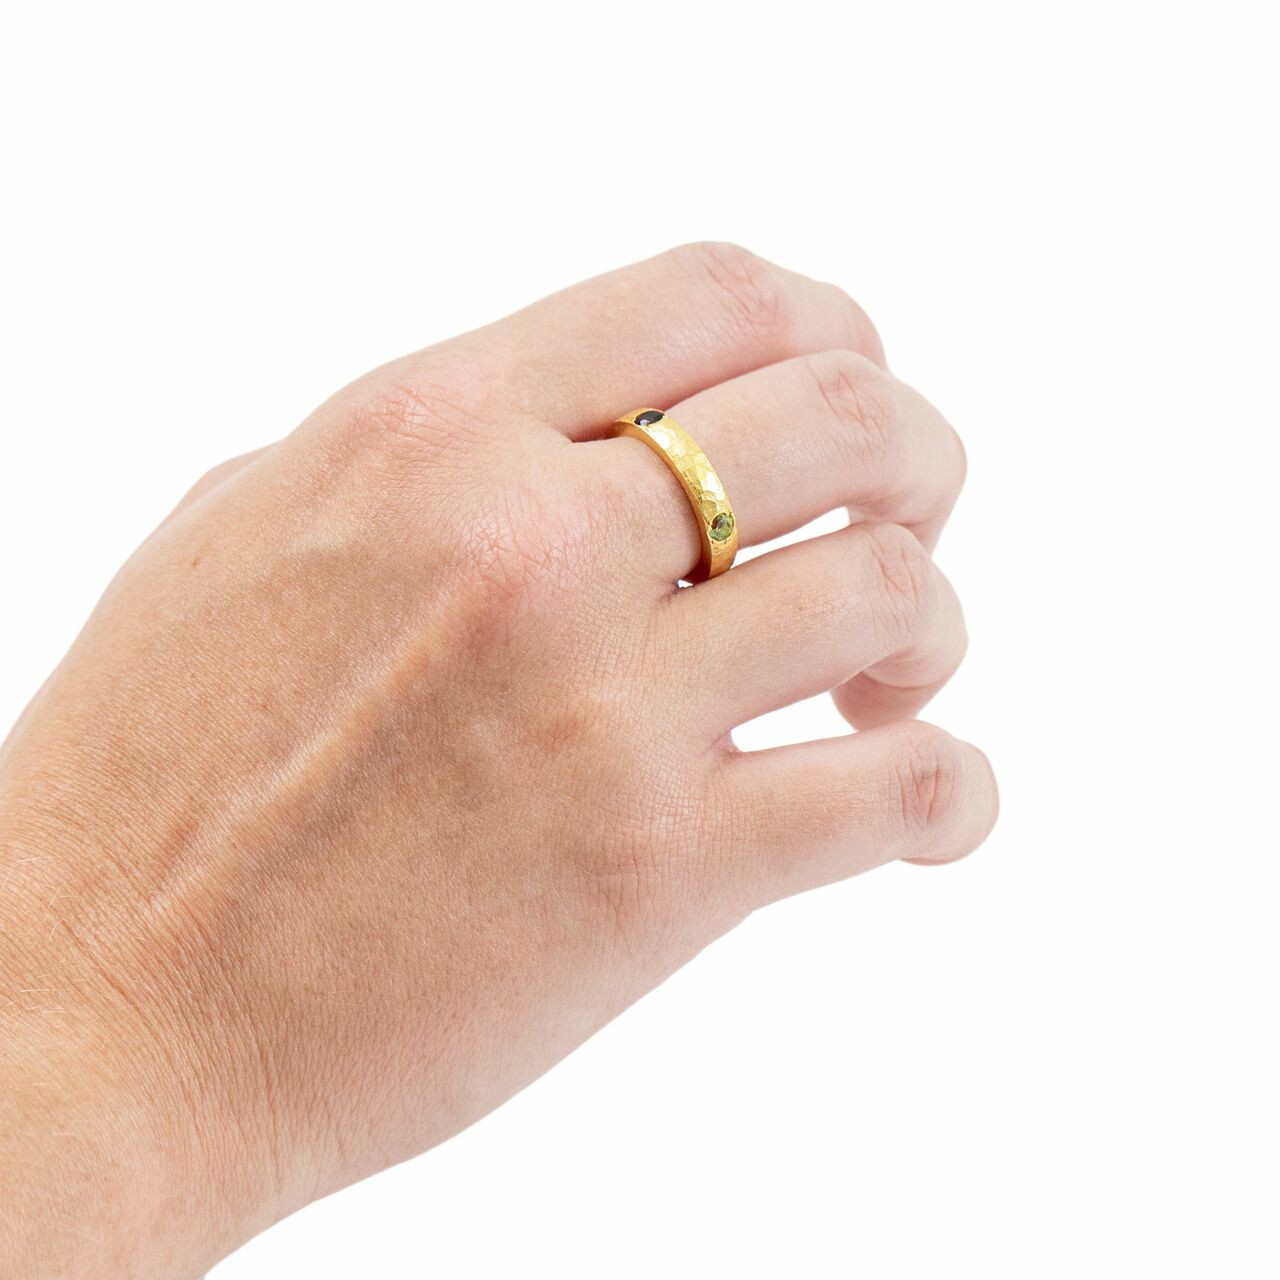 Gold Plated Ring with Garnet and Peridot - Pick from 4 sizes Creative Designs